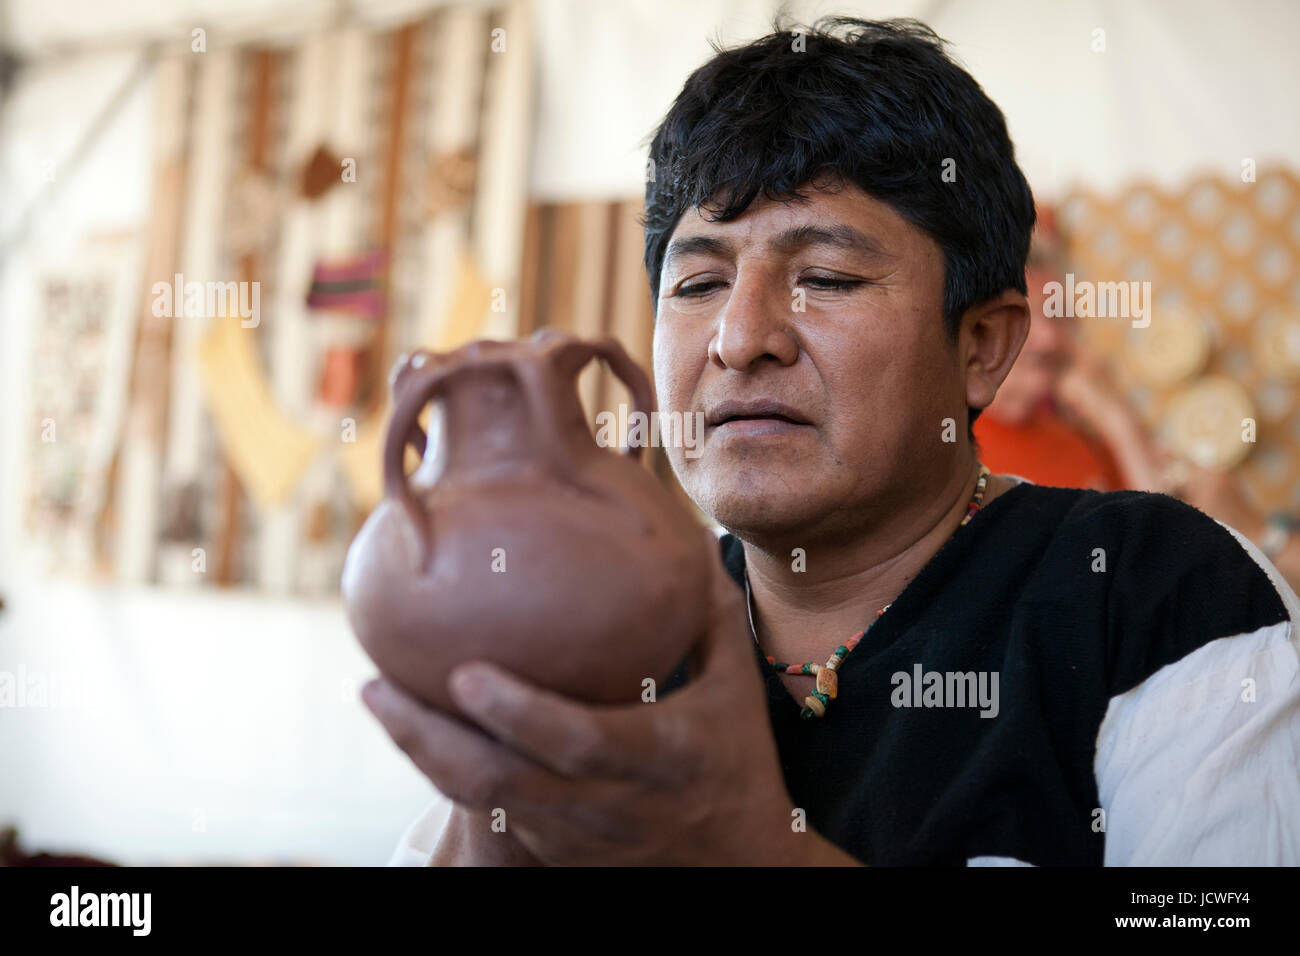 Indigenous Colombian pottery maker holding clay pot - Stock Image